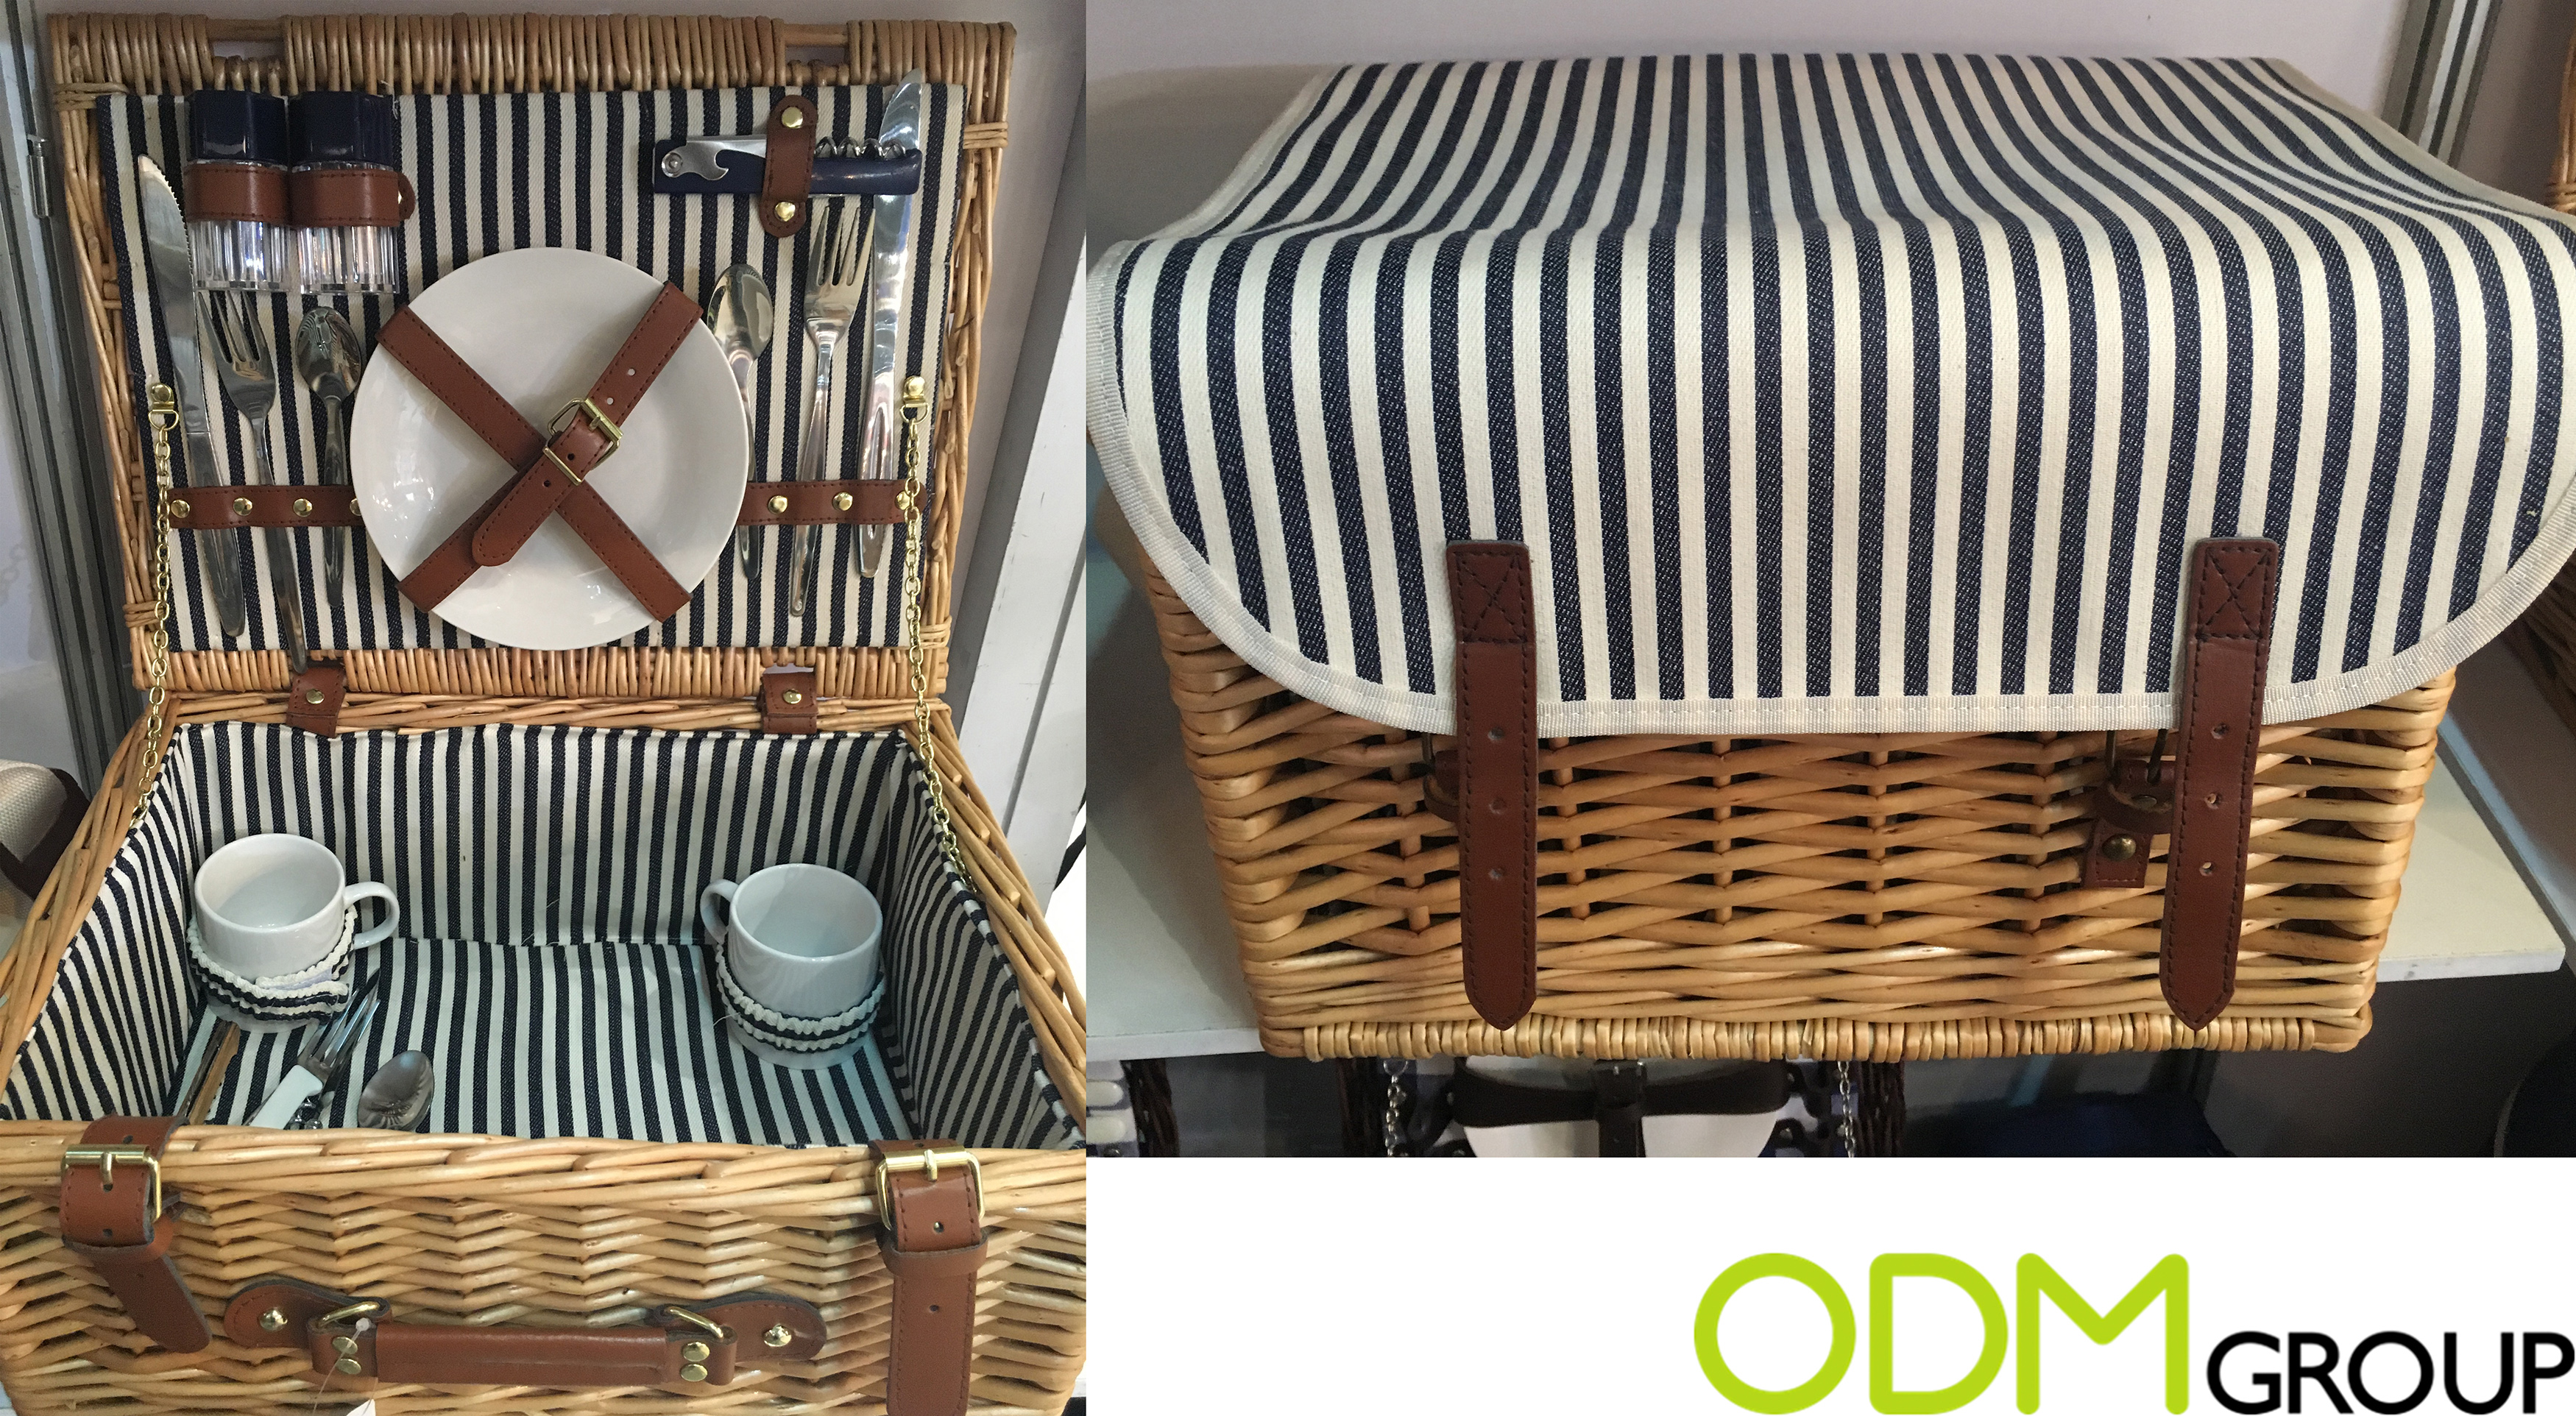 Outdoor Promotions - High-end Picnic Sets